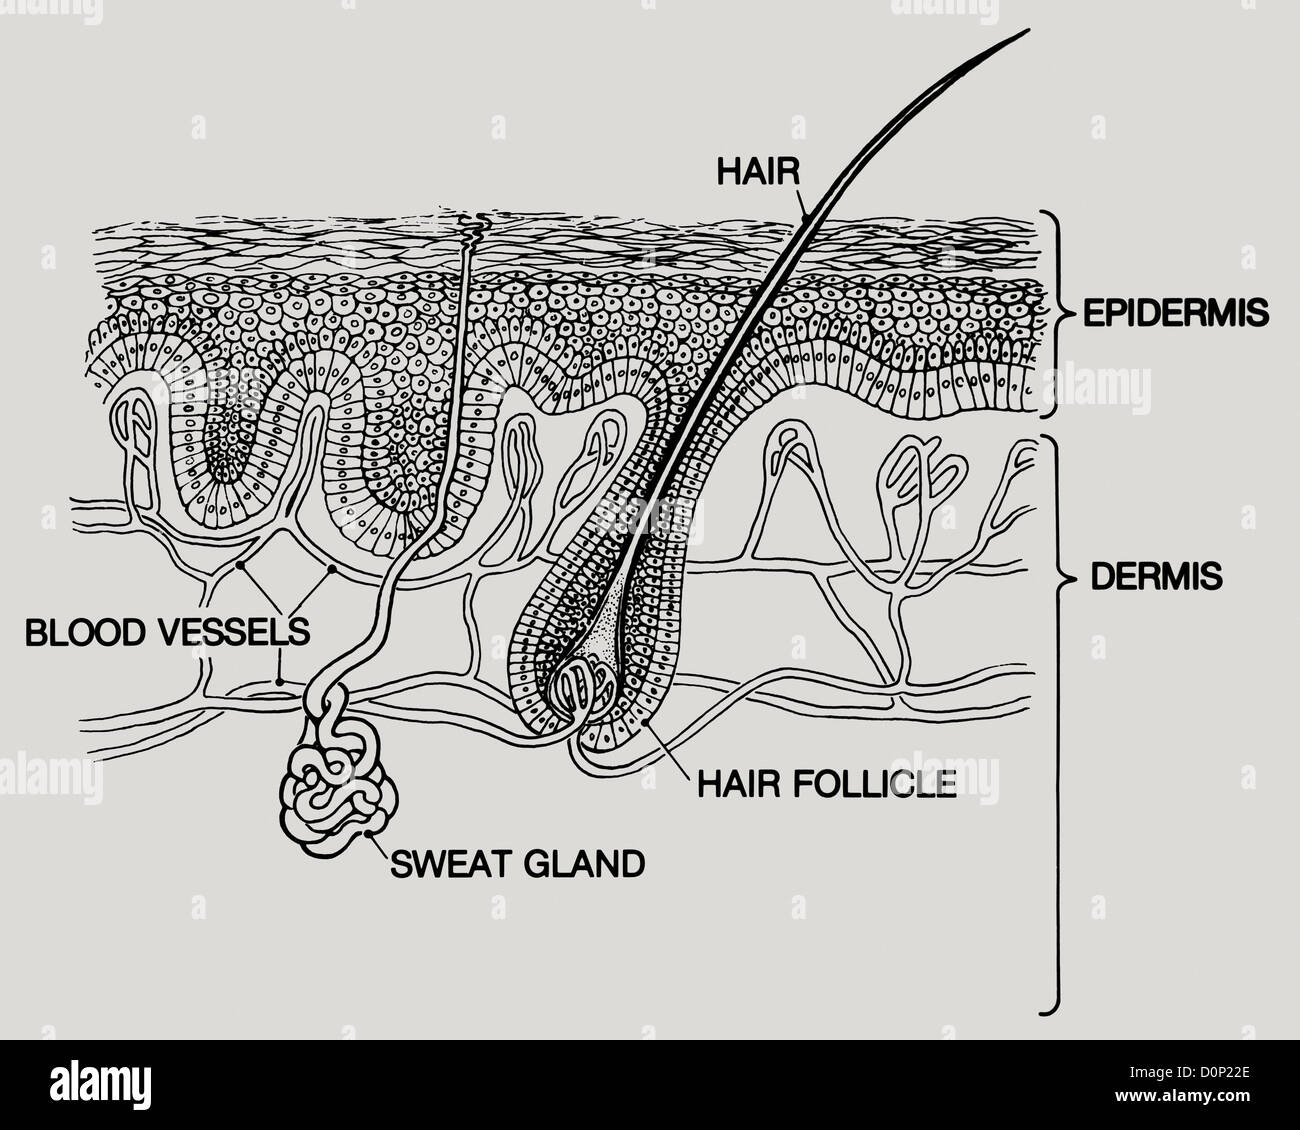 dermis layer diagram liquid oxygen phase a layers human skin two main are epidermis crossed sweat glands hair blood vessels run below